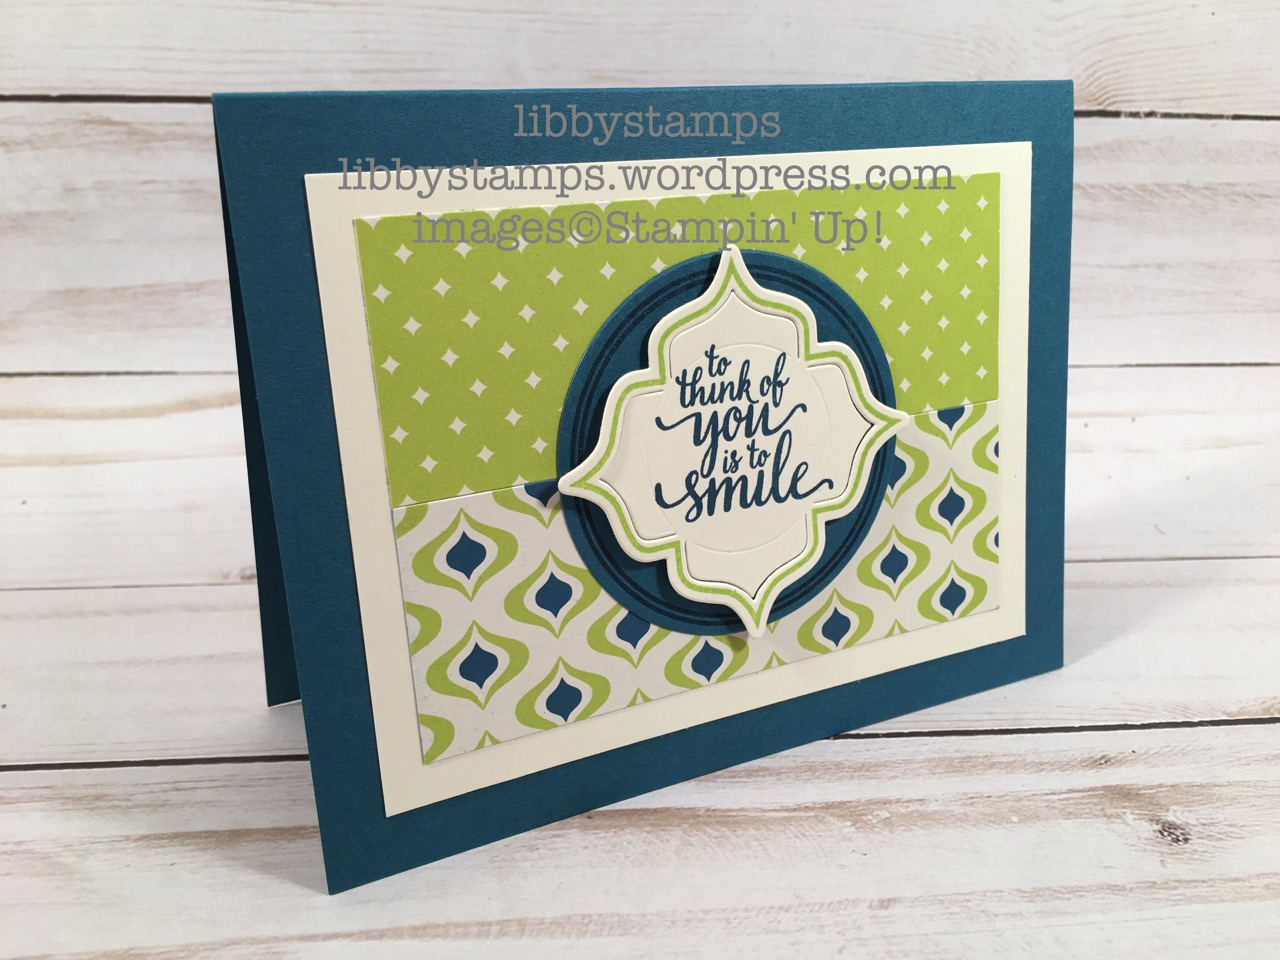 libbystamps, stampin up, Eastern Beauty, Eastern Beauty Bundle, Eastern Palace Specialty DSP, Eastern Medallions Thinlits, Layering Circles Framelits, WWC